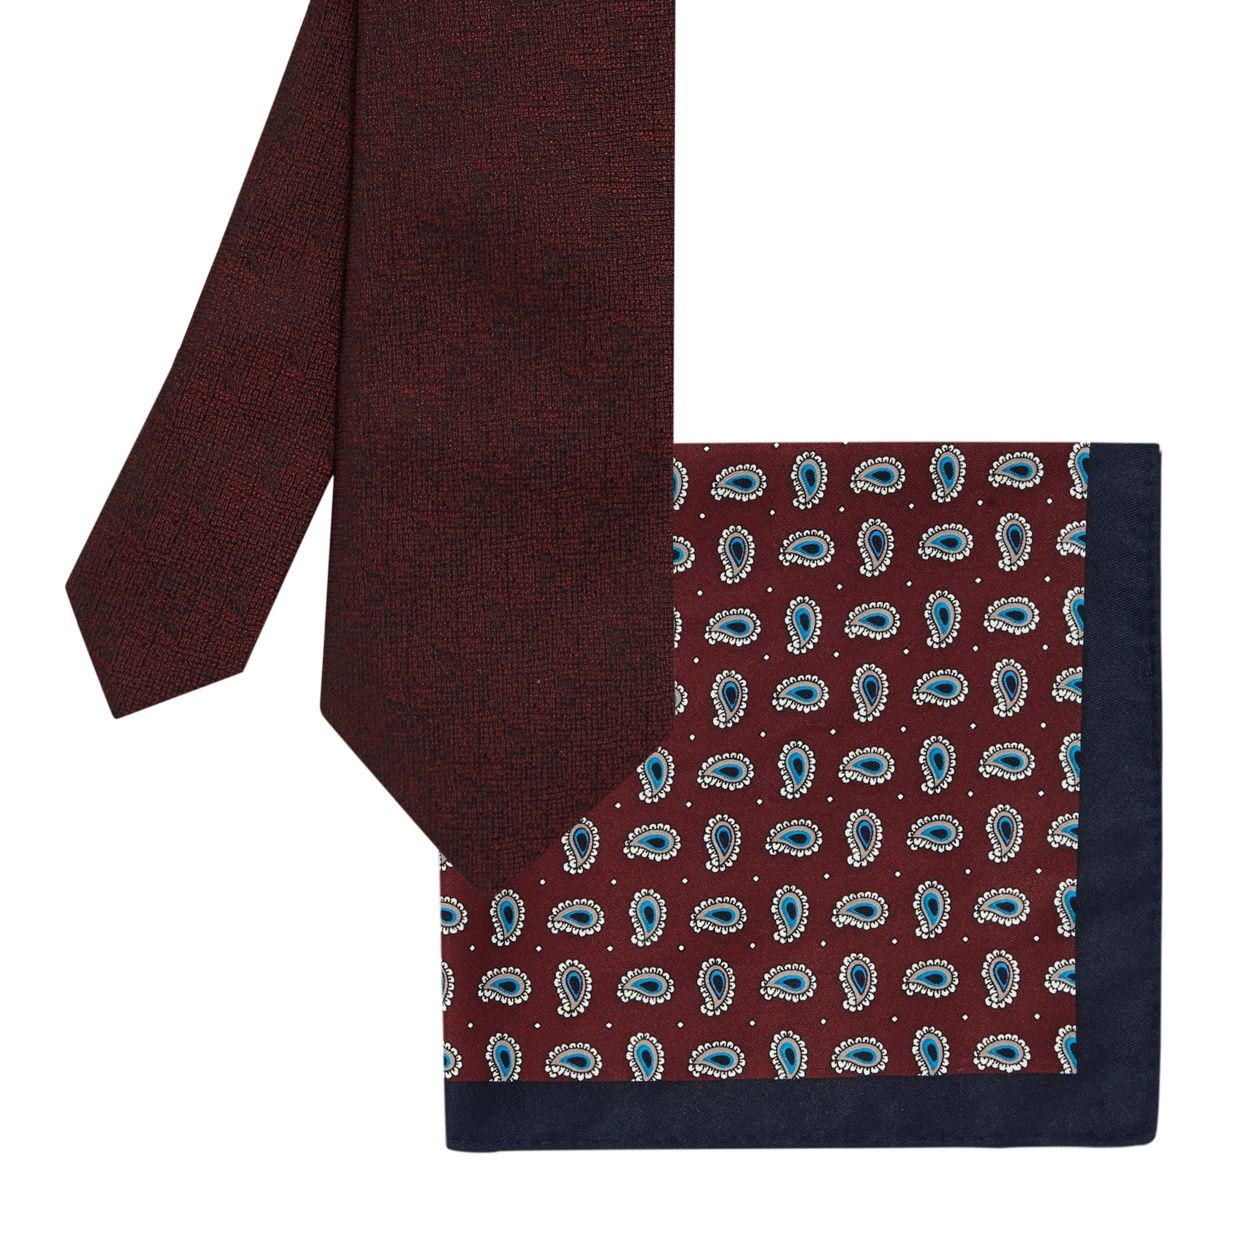 Jeff banks dark red paisley tie and pocket square gift set